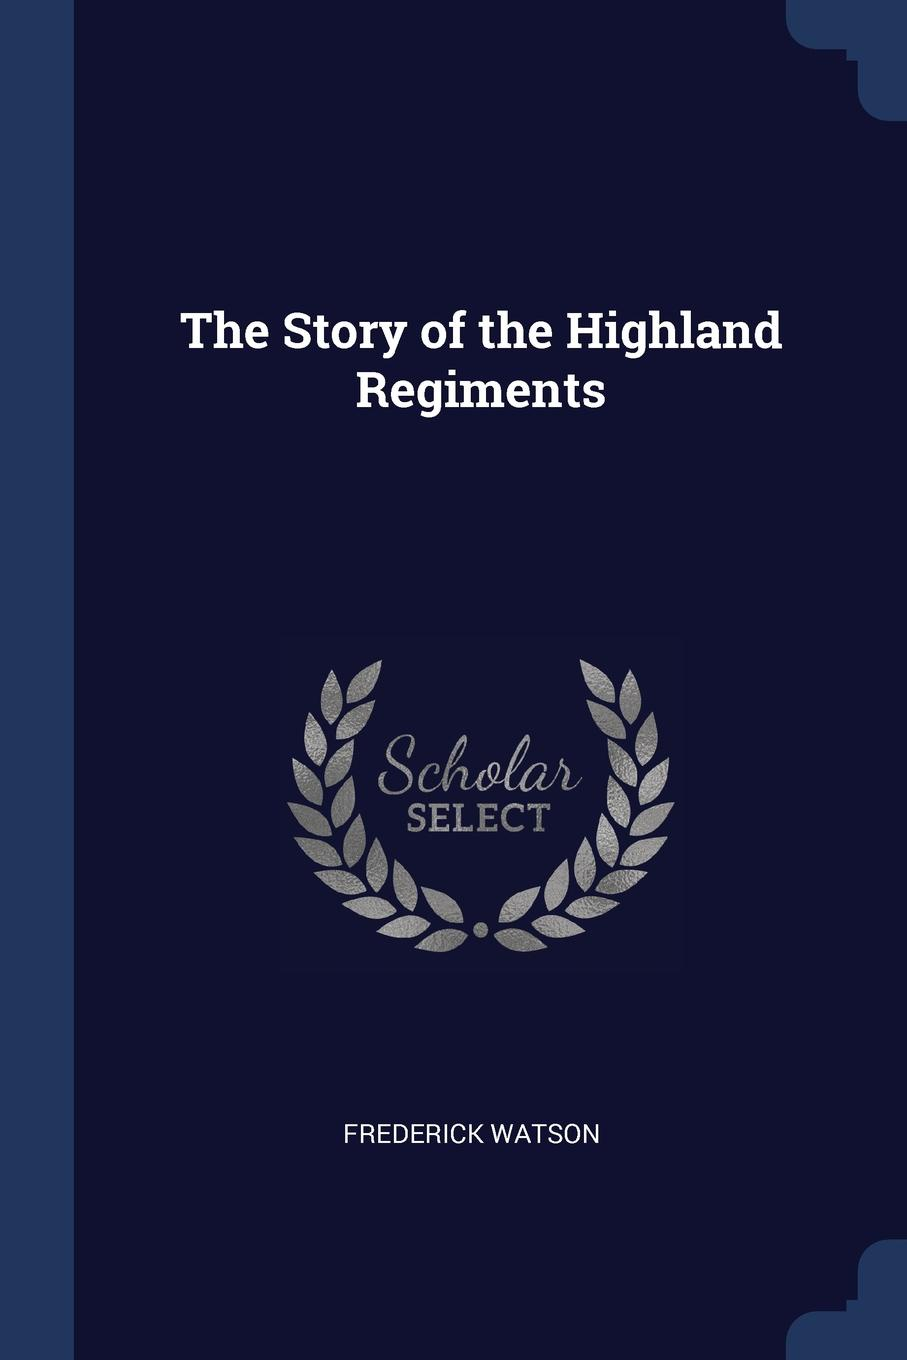 The Story of the Highland Regiments. Frederick Watson